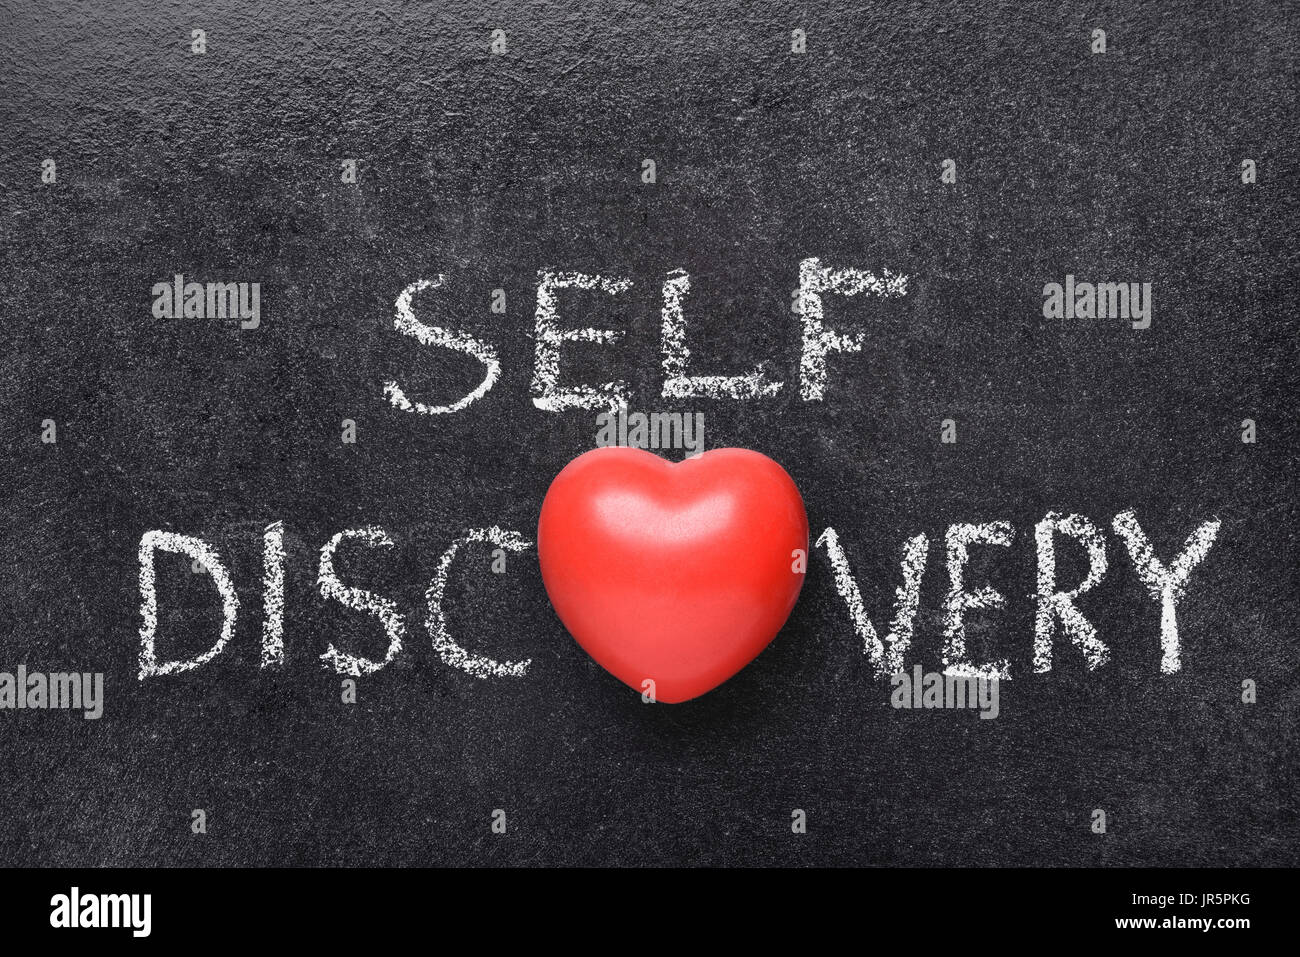 self discovery heart phrase handwritten on blackboard with heart symbol instead of O Stock Photo